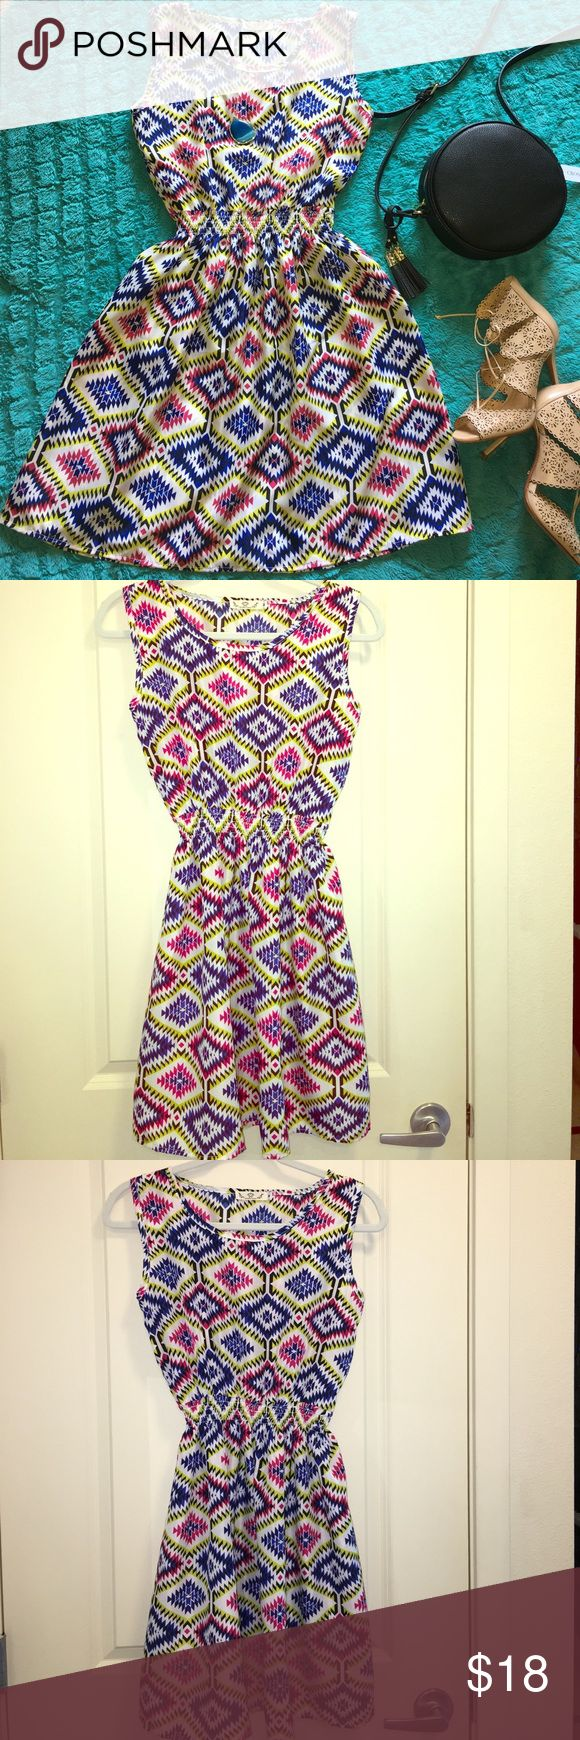 """✨SALE✨🇺🇸🆕 Fun sundress & Aztec BoHo chic style✨ New with tags sexy skater sundress with Aztec BoHo chic style dress 💚Great for  the summer this dress can be worn to parties , date nights , & transfers from day to evening. 🌴Also can work as a beach cover-up. 🌴Material is chiffon. This dress fits a small and a medium comfortably. 💙Bust measures"""" 30""""inches-""""35"""" inches 💚 waist measures 18 inches """"30"""" inches ( elastic waist) 📫 1 Day shipping🛍🛍Bundle for % 10 off ! 😾pet & Odor Free…"""